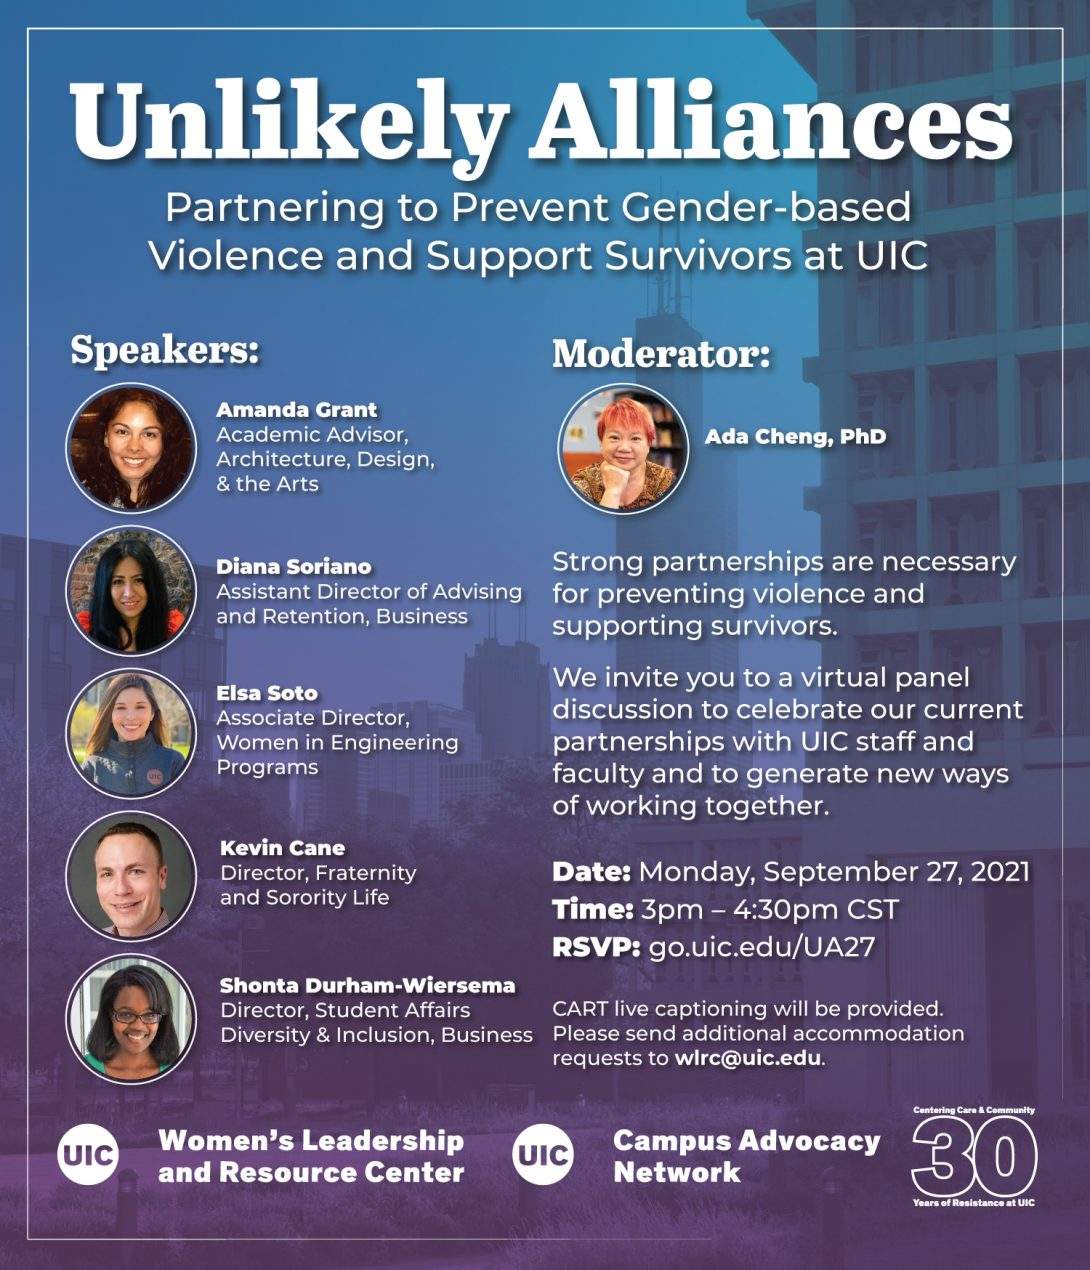 A faded image of some of UIC's campus buildings and the Chicago skyline, overlaid in a blue and purple gradient, and headshots of the event speakers with text describing the event